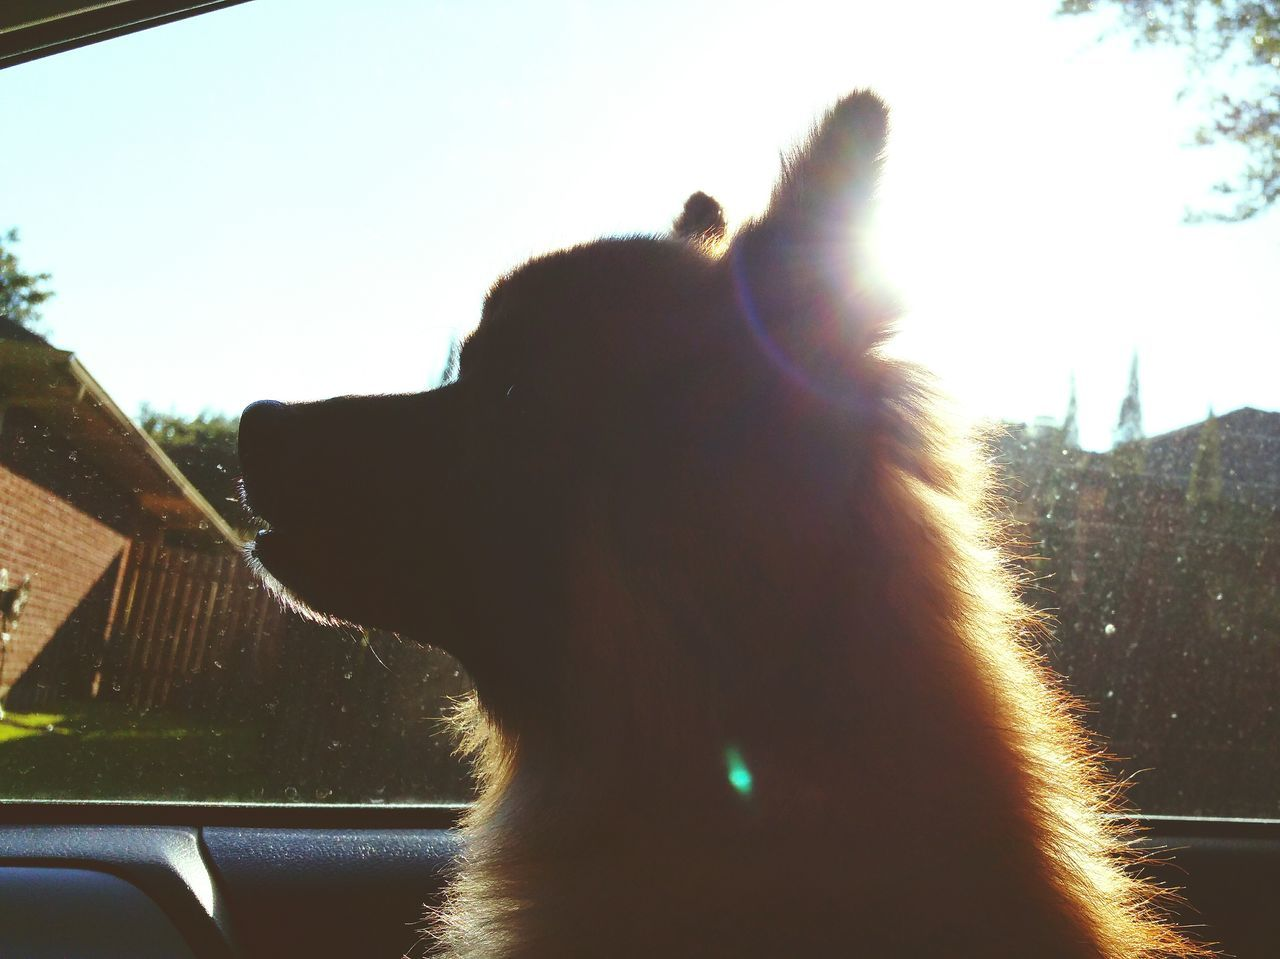 The golden hour. ☉🐶 Mo And Bruno My Boy Mo Little Mo Mo Monster Out For A Ride Pomeranian-Chihuahua Pomeranian Mix Mutt Forever A Puppy Puppy At Heart My Baby Has Four Paws Dog Doggy Doggy Love My Dog Loves Car Rides Looking Out The Window Through The Looking Glass My Four Legged Child Family